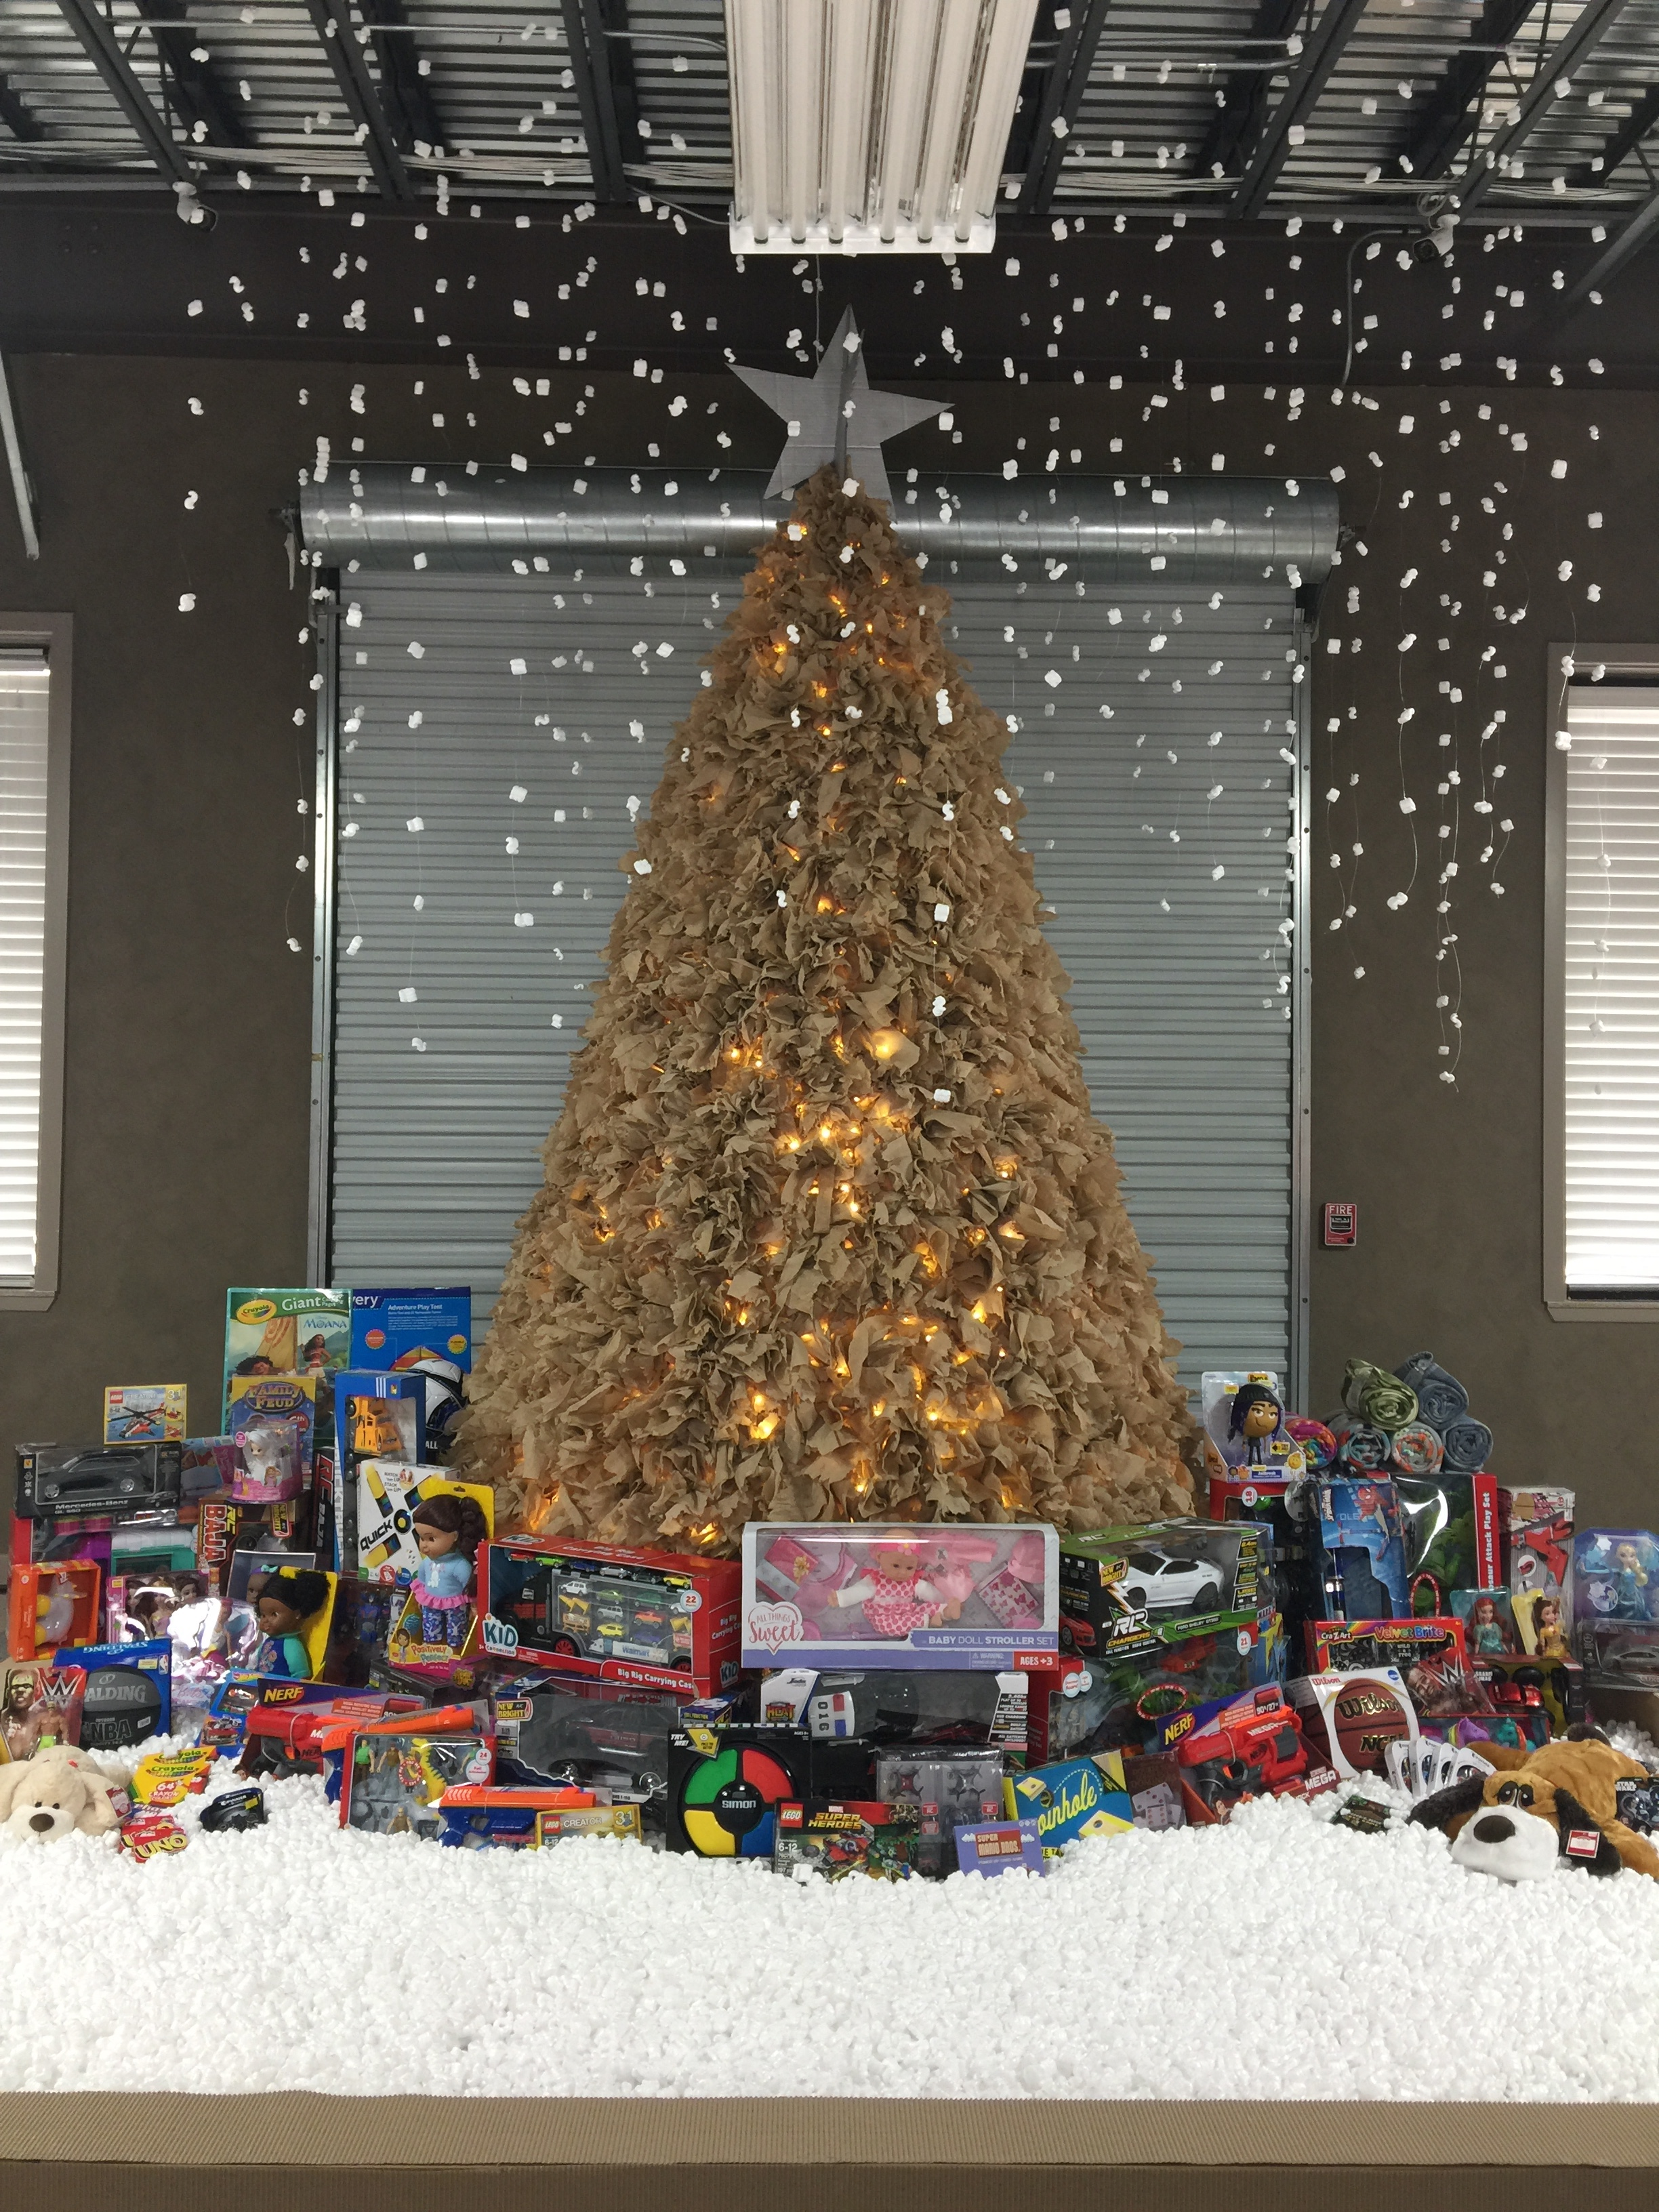 ameritex movers shows its holiday spirit with cardboard christmas tree and toy drive